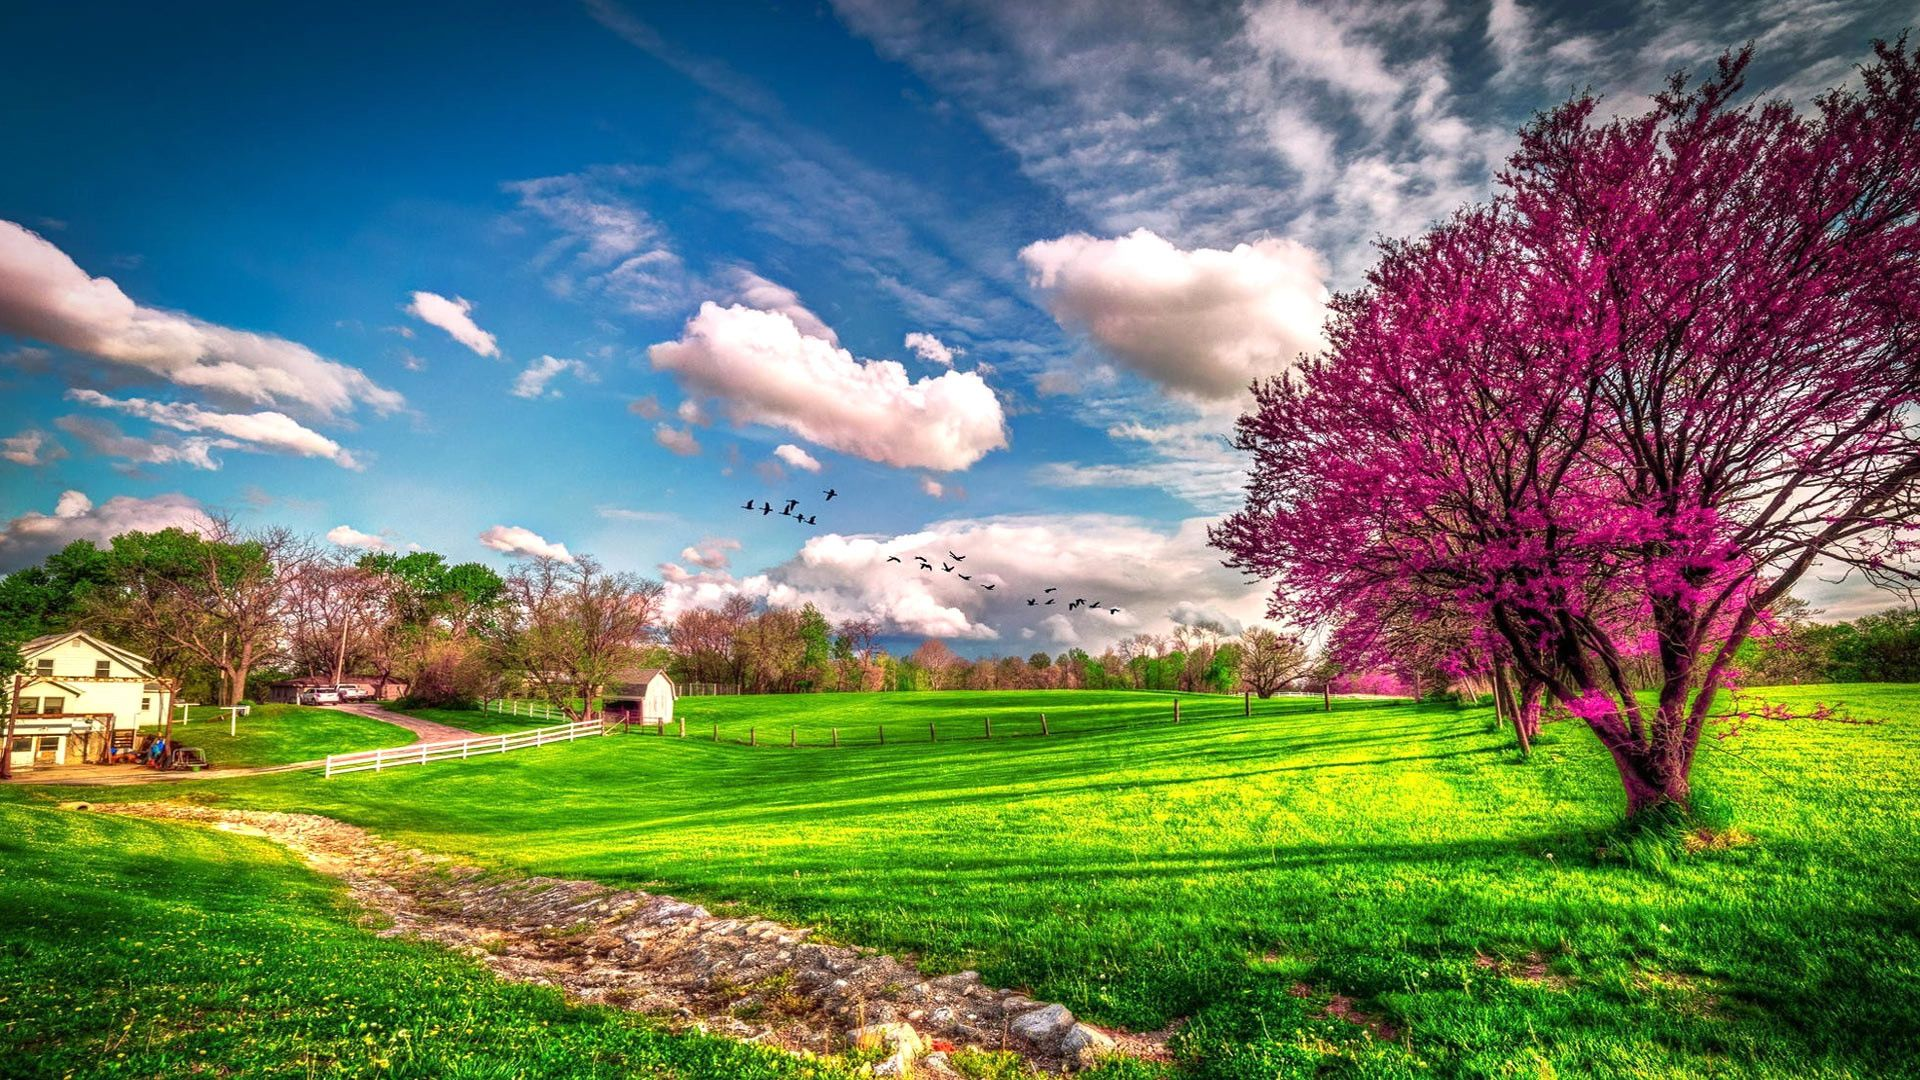 Wallpaper Download 1920x1080 Landscape Beautiful Spring Nature Wallpapers Seasons